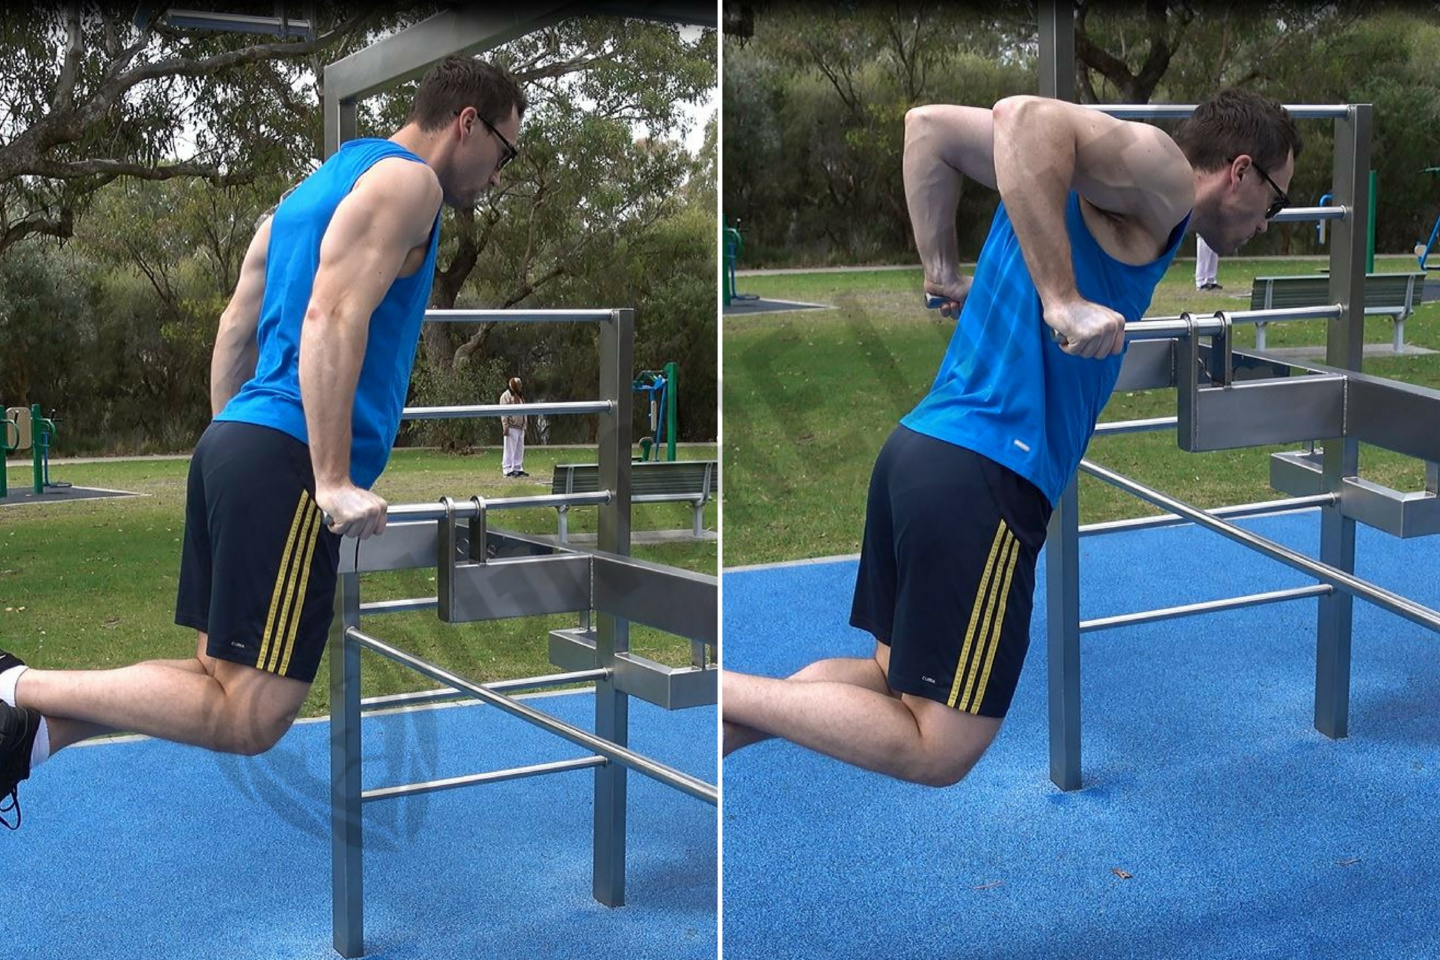 How To: Chest Dips - Ignore Limits